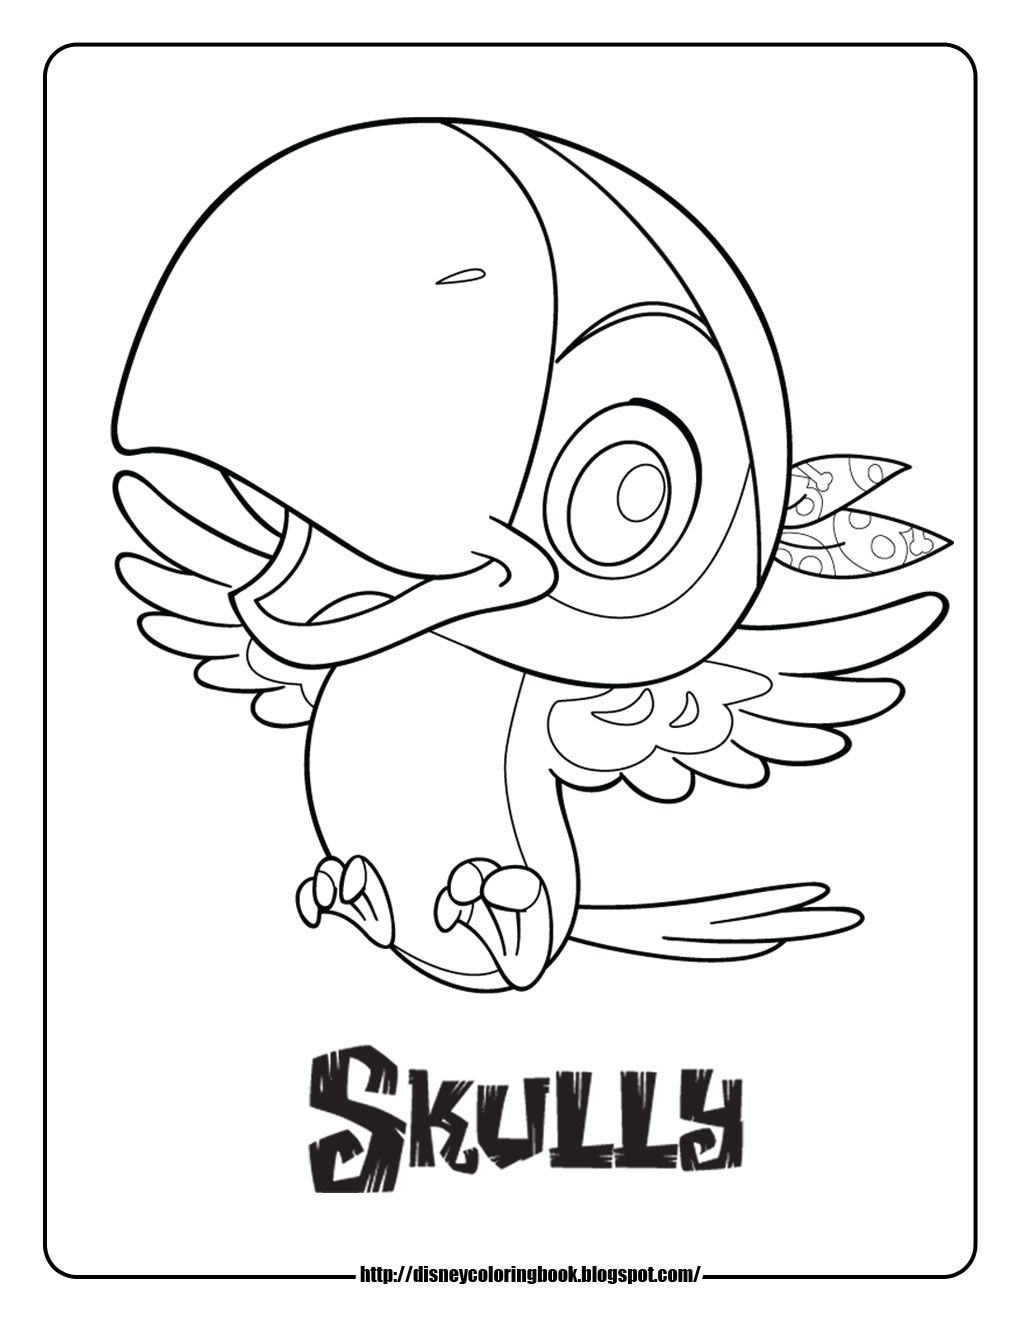 Color crew printables - Jake And The Never Land Pirates Coloring Pages Coloring Sheets Skully